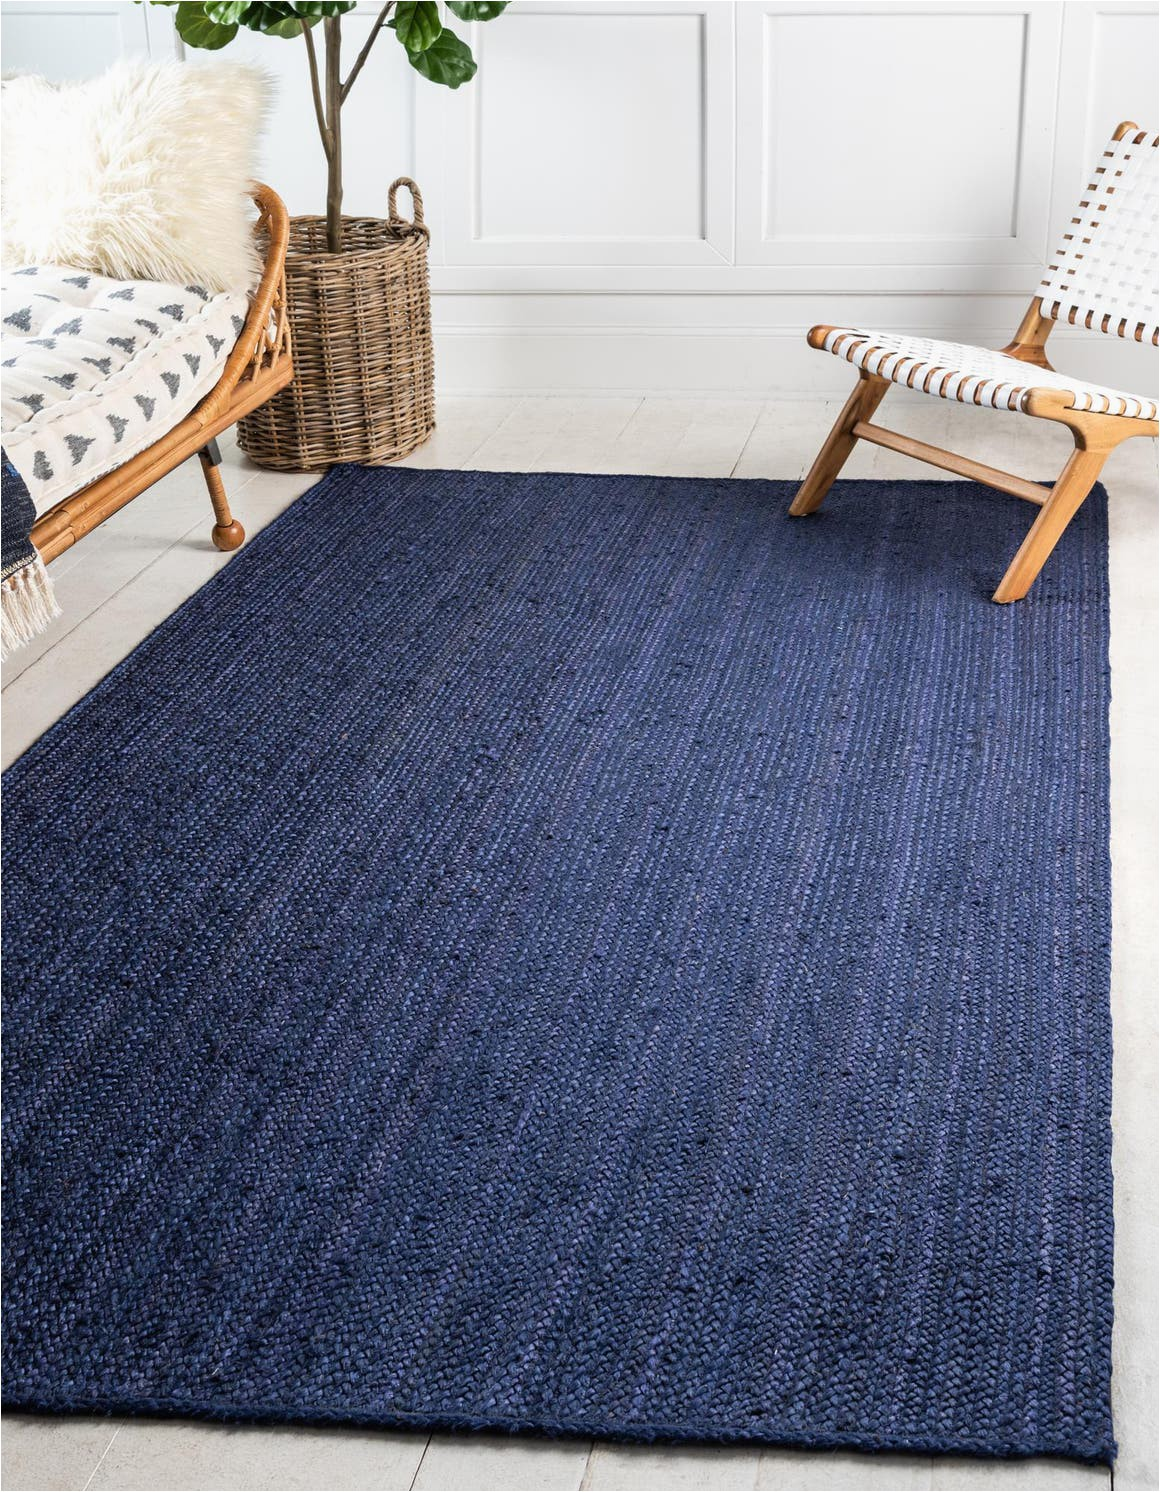 navy blue 5x8 braided jute area rug